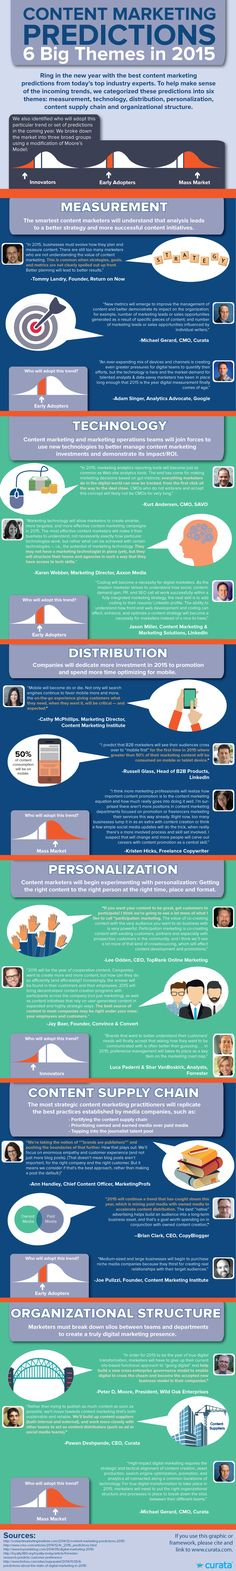 #Content #Infographics: 6 Big Content #Marketing Themes Predictions in 2015